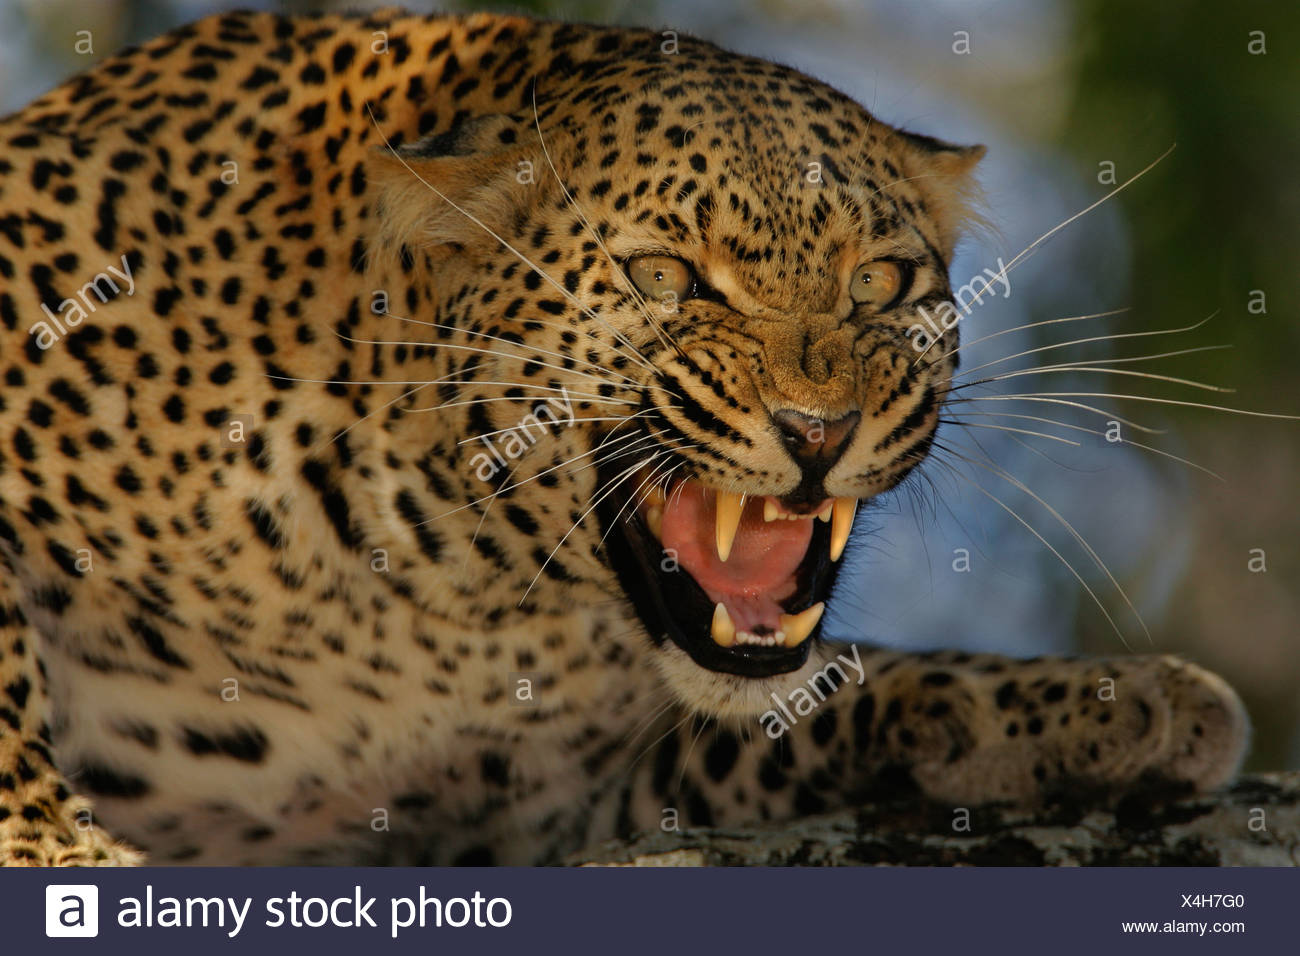 Leopard growling, Greater Kruger National Park, South Africa - Stock Image